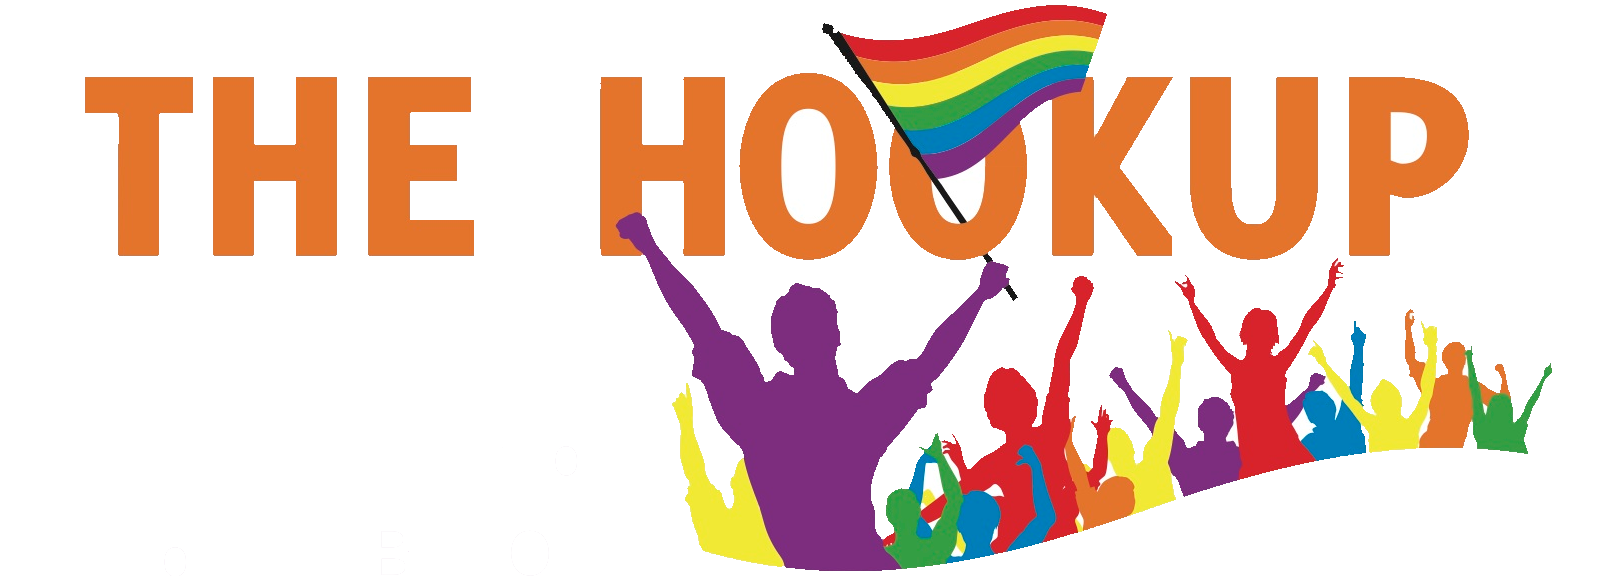 The HookUp Banner Cropped